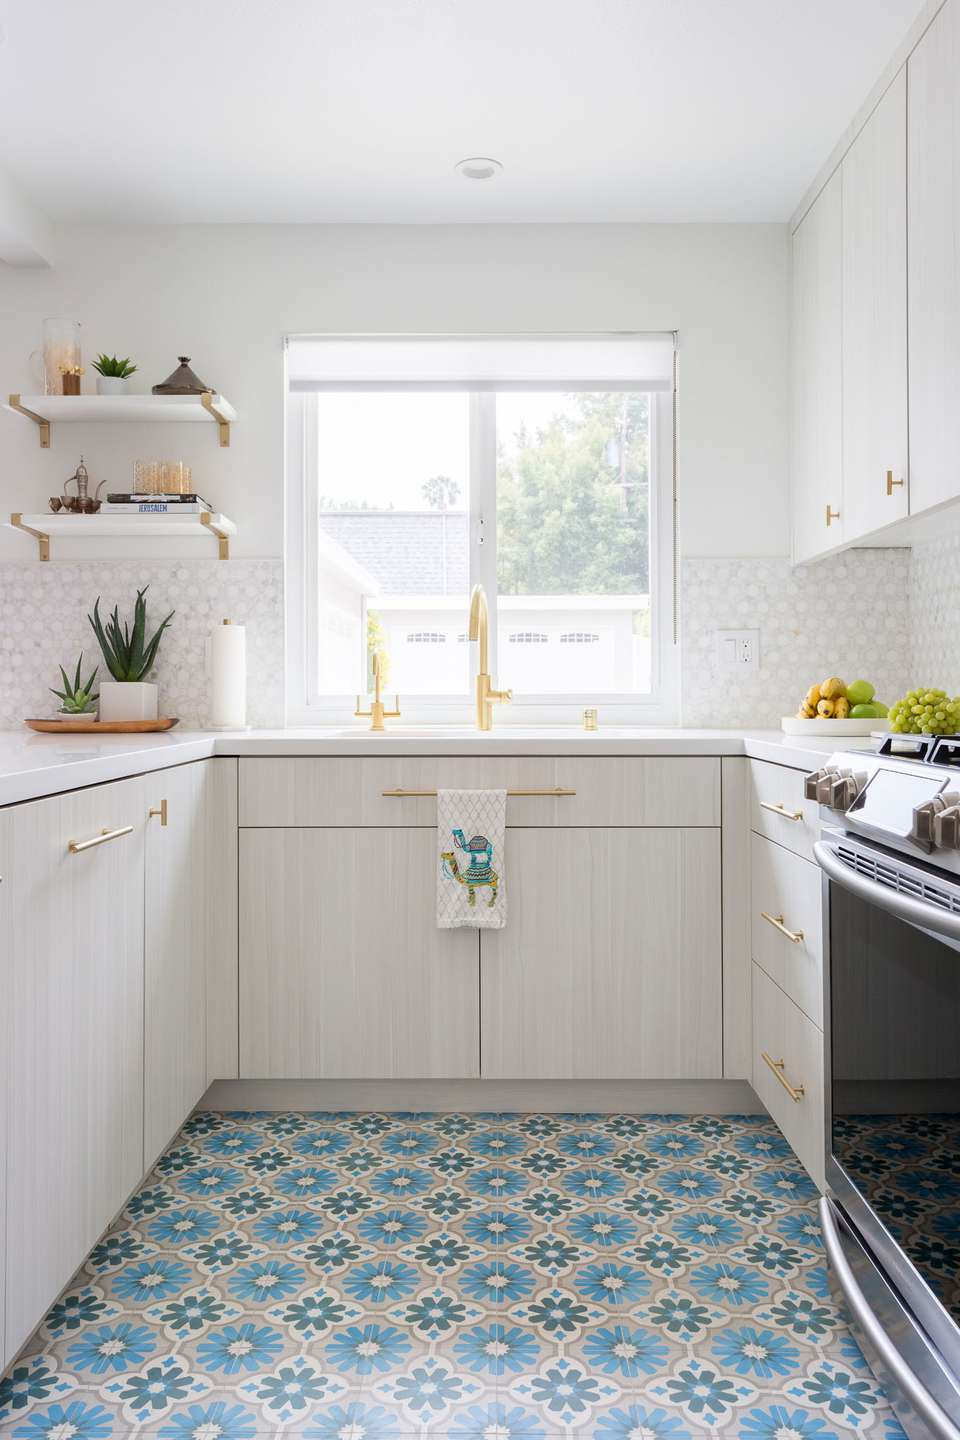 Moroccan Tile Ideas For Floors And Backsplashes